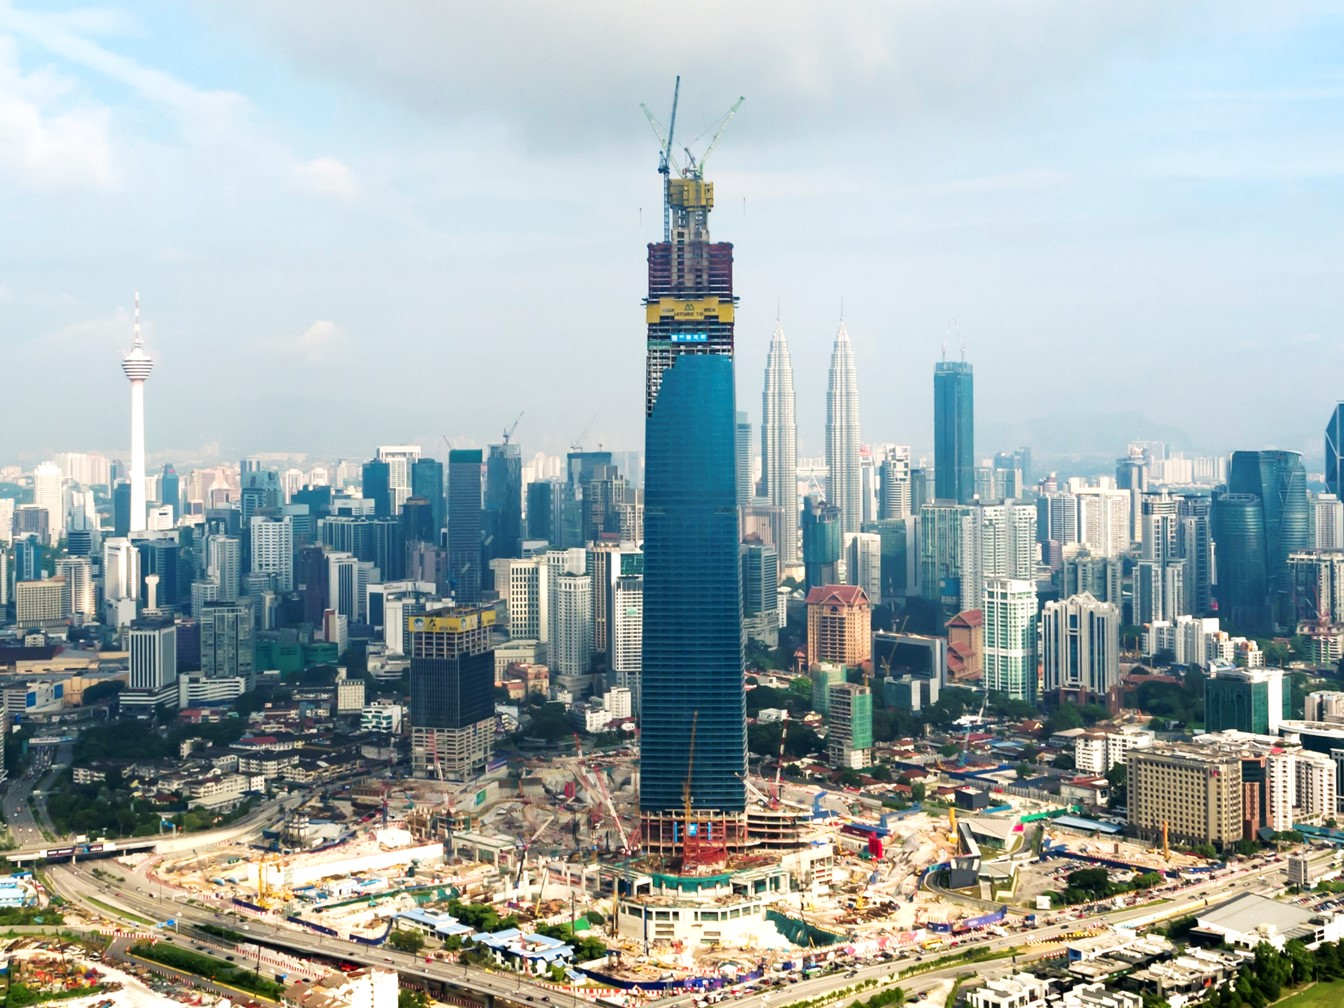 Image from Mulia Property Development Sdn Bhd via Malay Mail Online